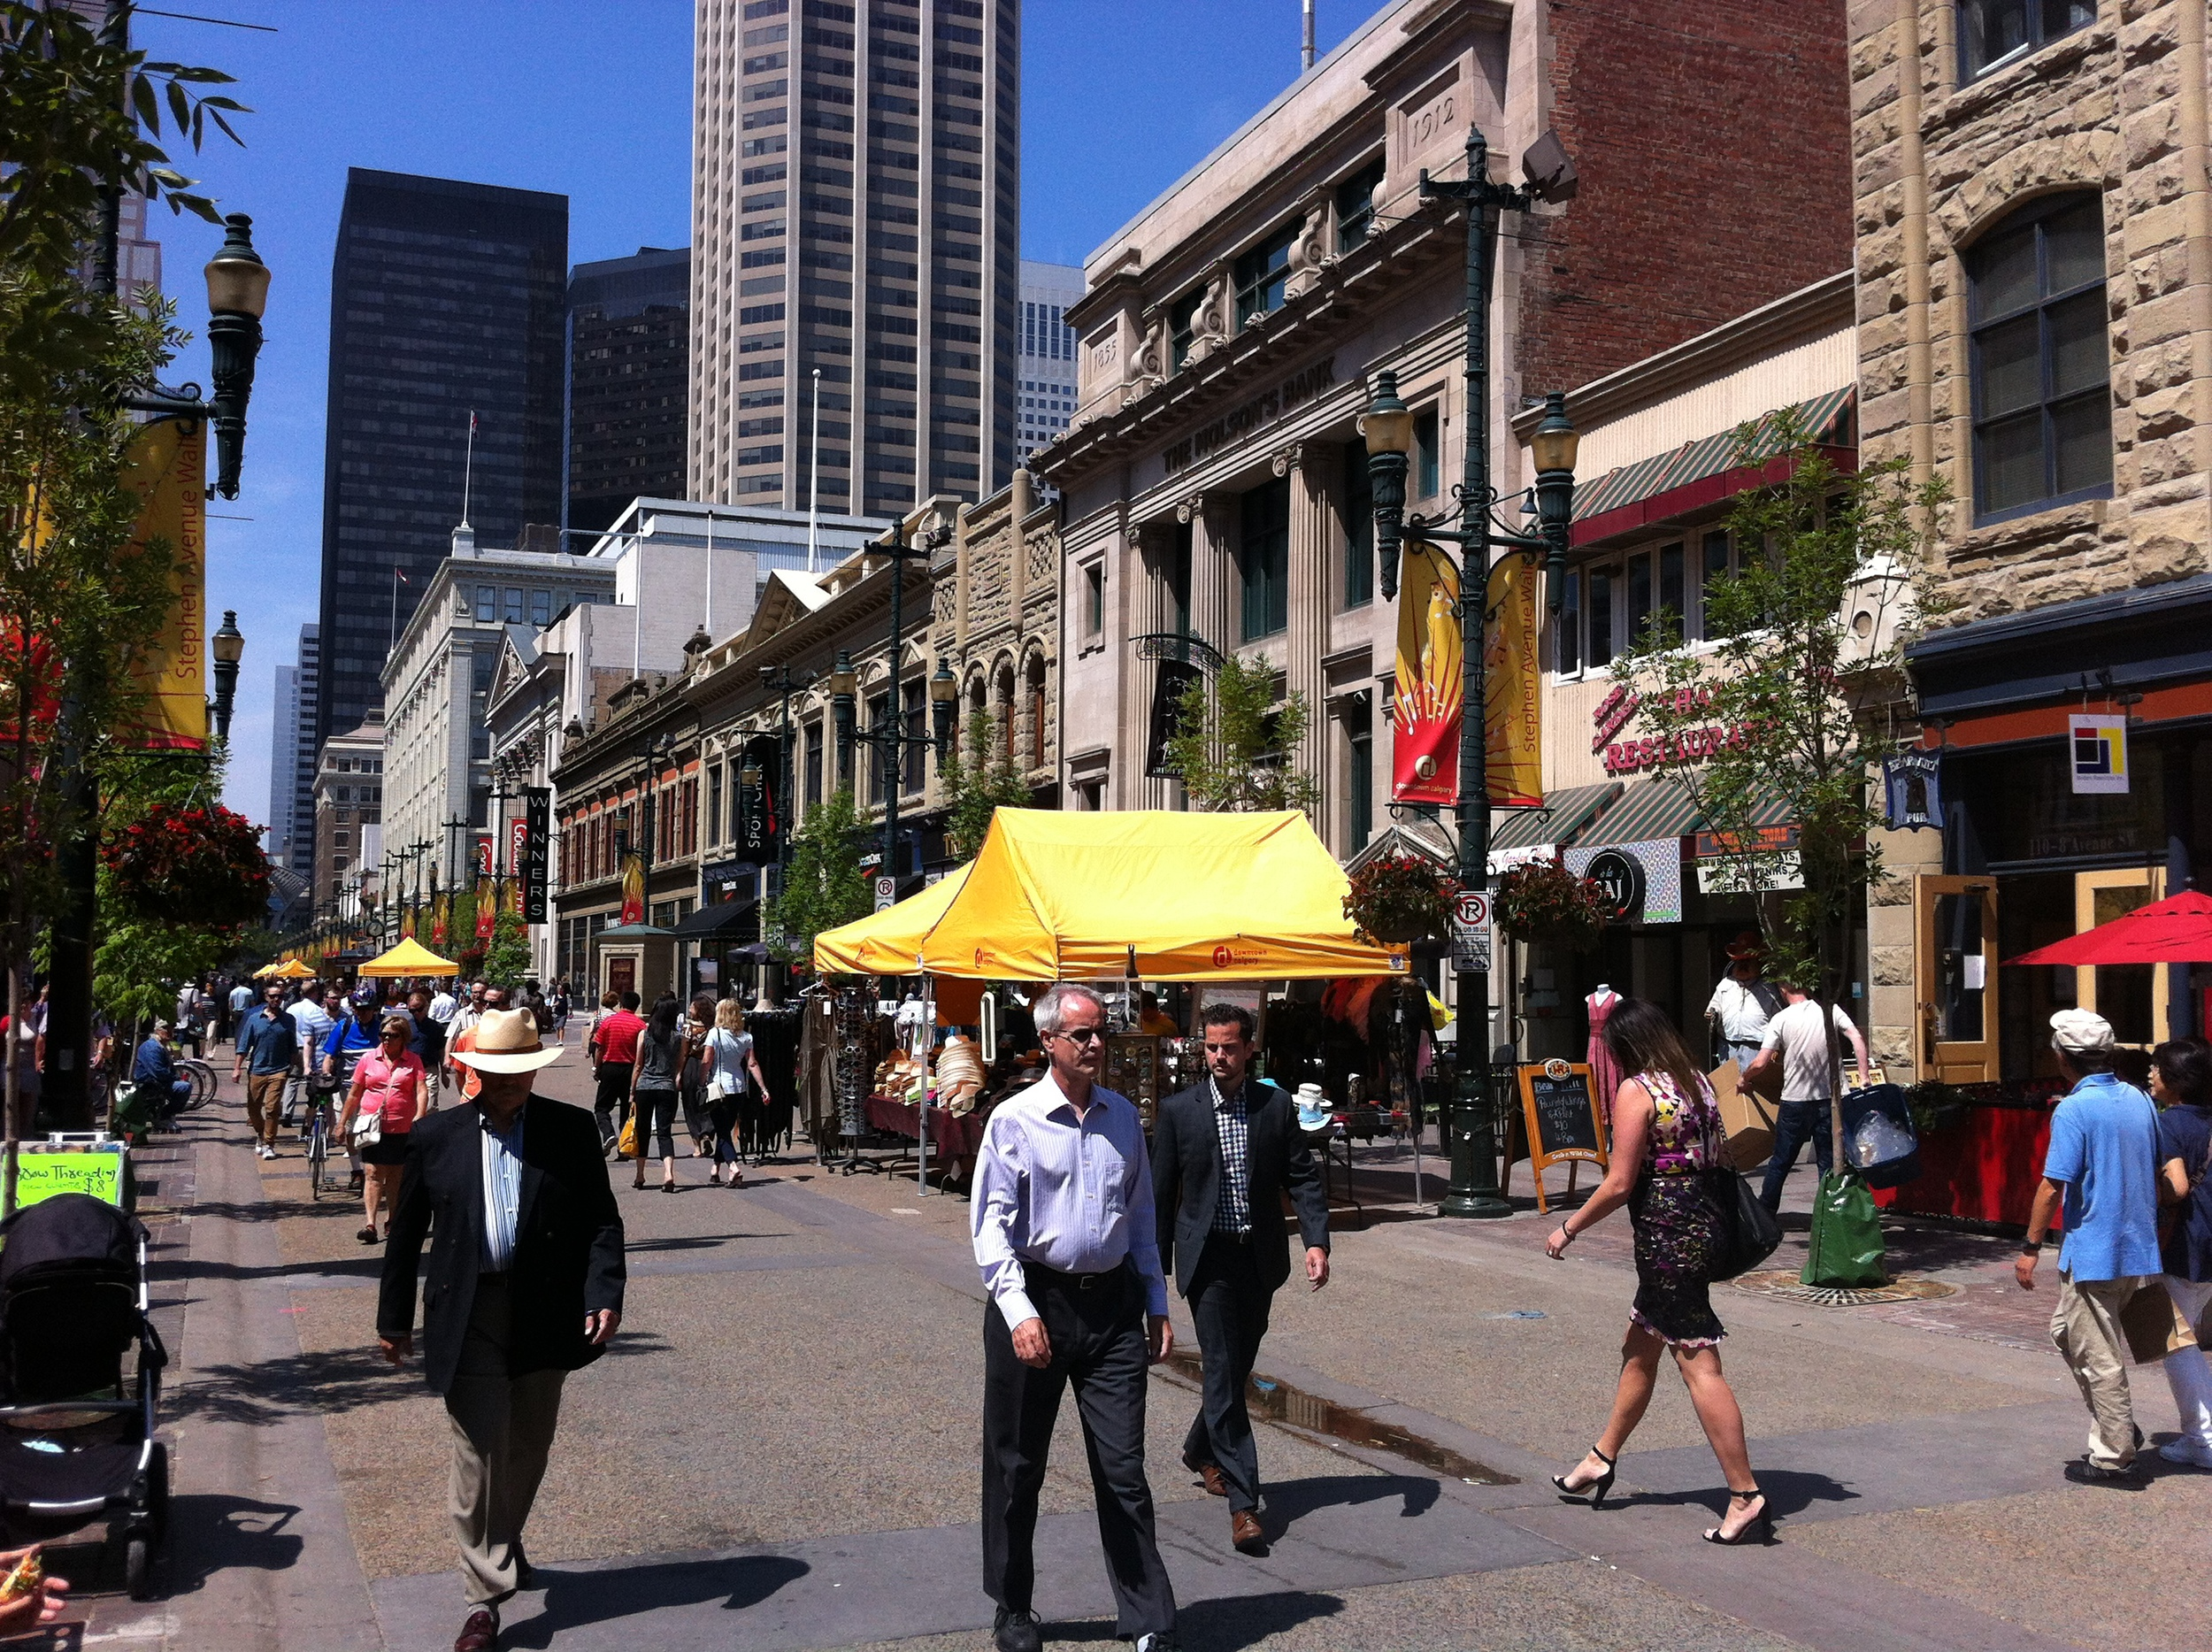 The Stephen Avenue pedestrian mall is a unique experiment in urban placemaking. It is a pedestrian mall by day and one-way street by night.